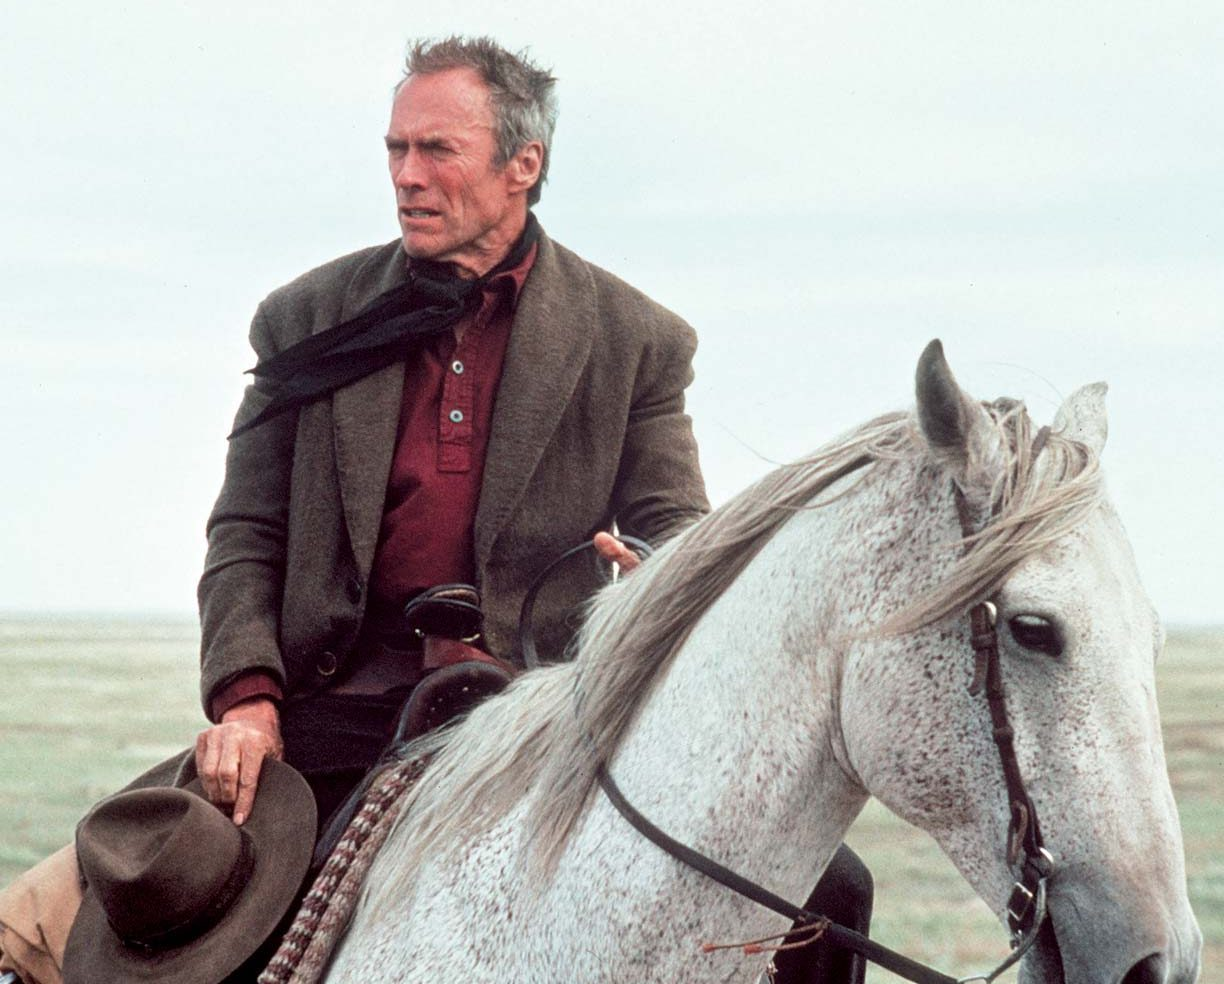 Clint Eastwood Unforgiven e1608639460661 Clint Eastwood: 5 Of His Best Movies, And 5 Of His Worst